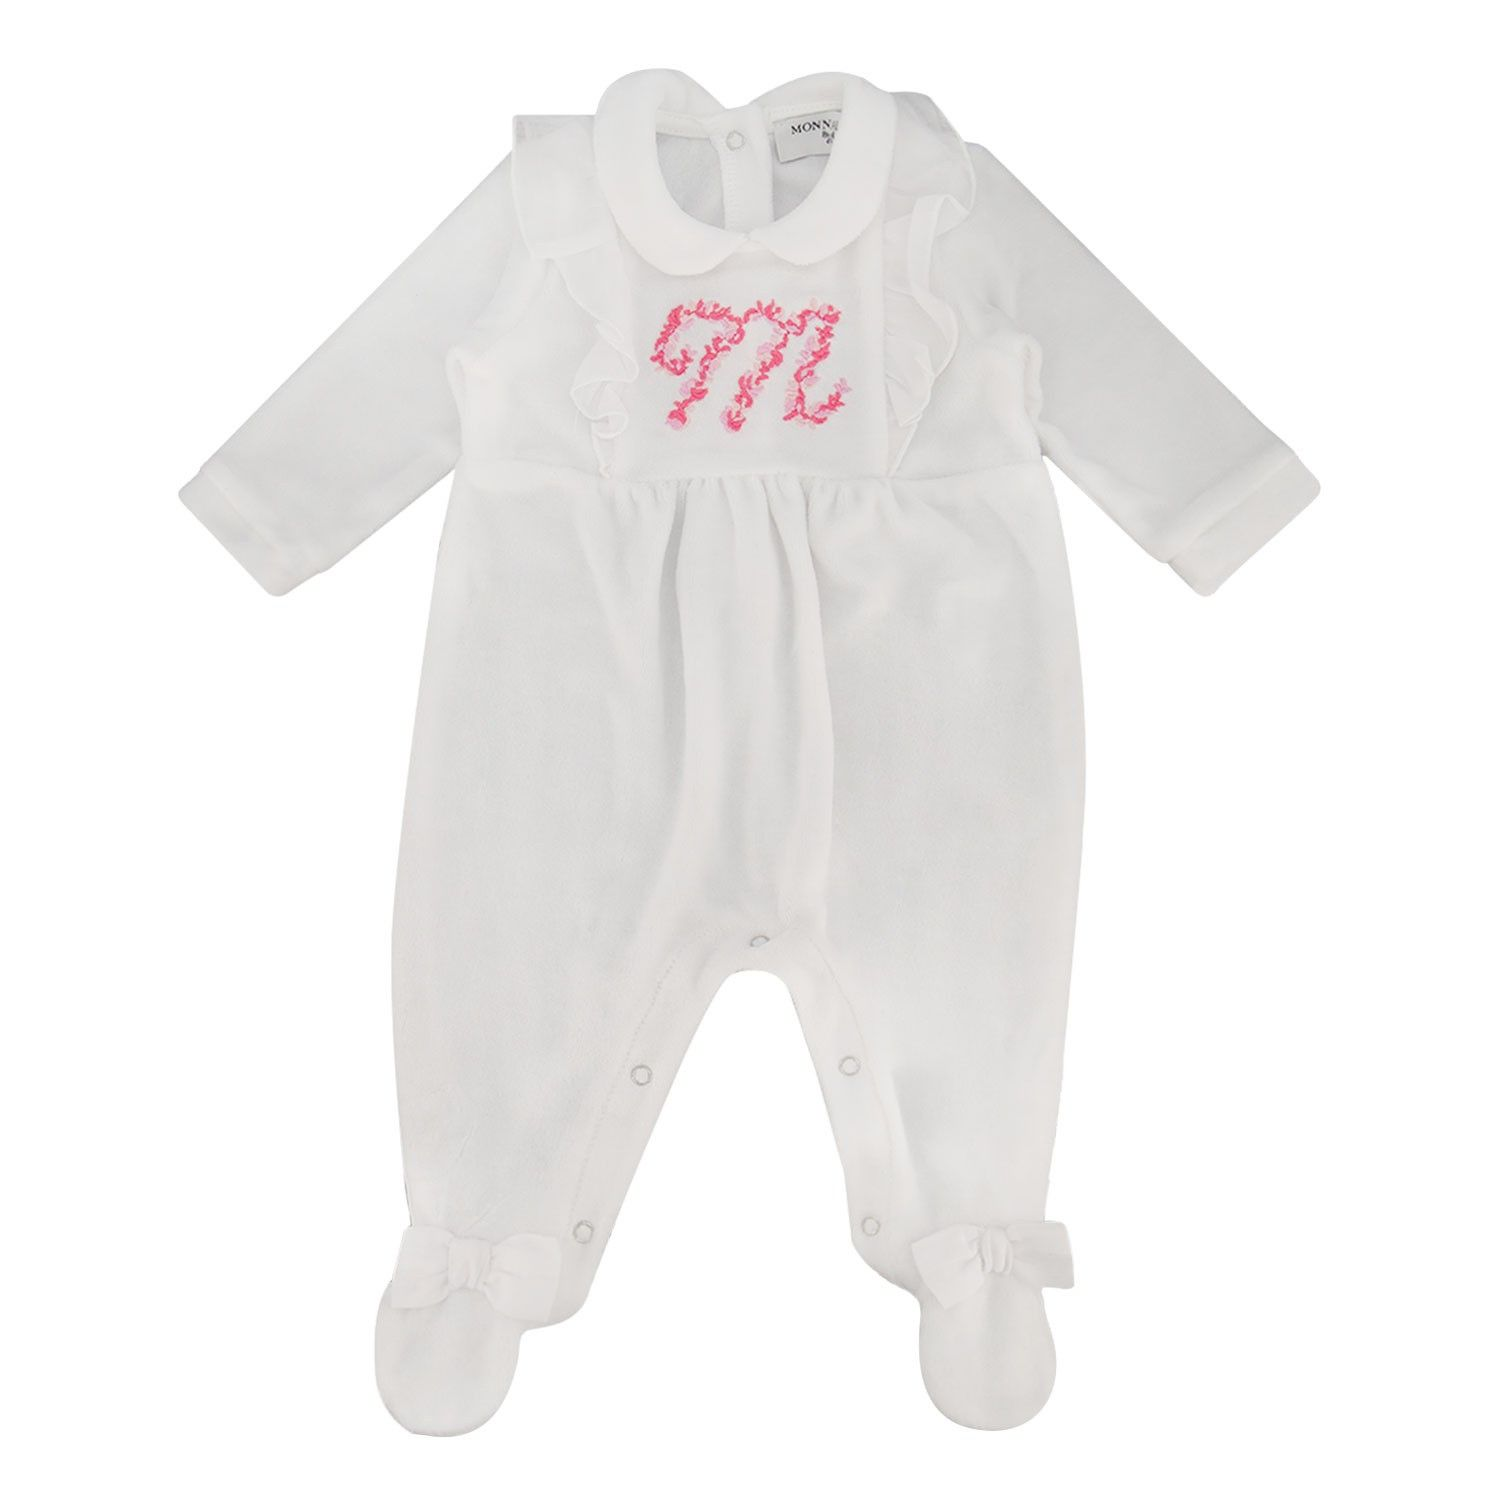 Picture of MonnaLisa 355202R5 baby playsuit white